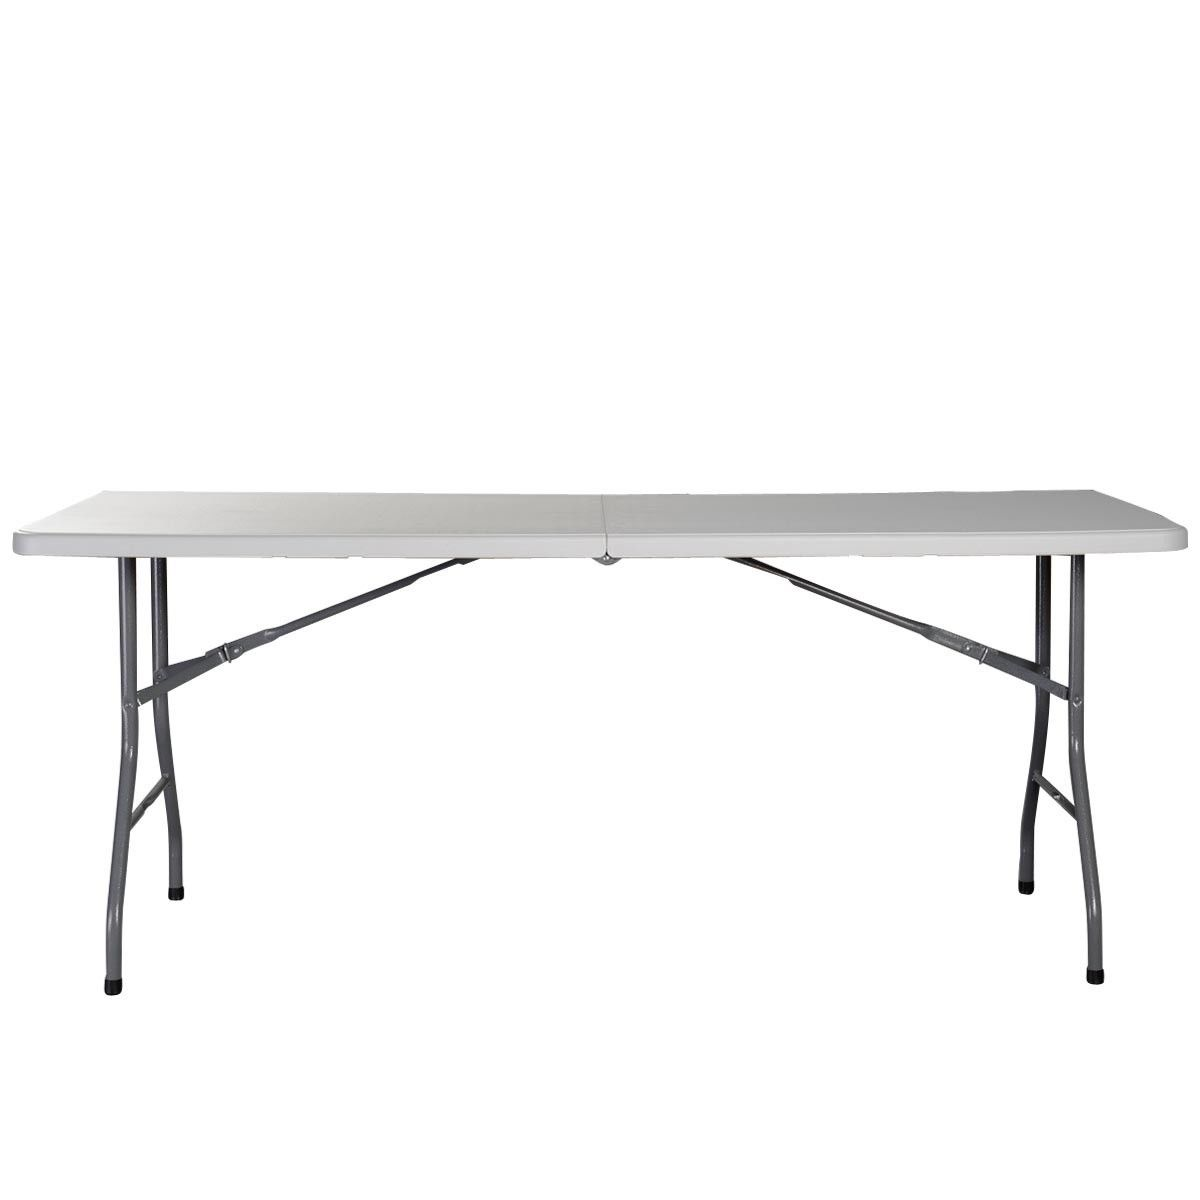 6 ft portable folding table outdoor picnic plastic camping - Plastic folding dining table ...